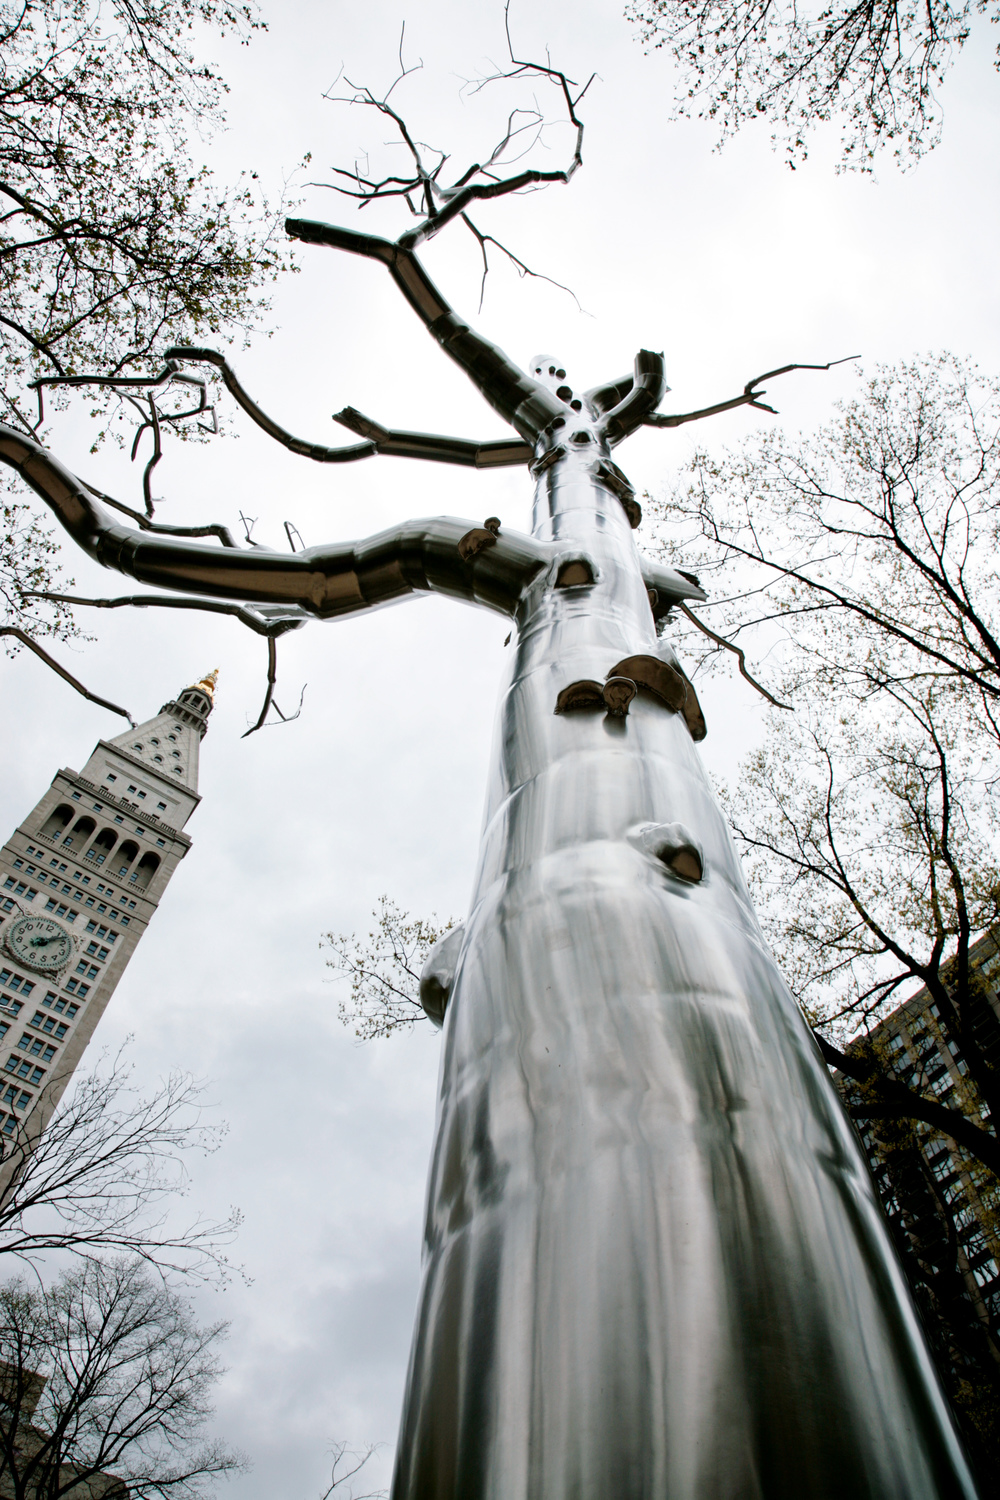 Defunct, 2004, stainless steel, 46 x 18 feet